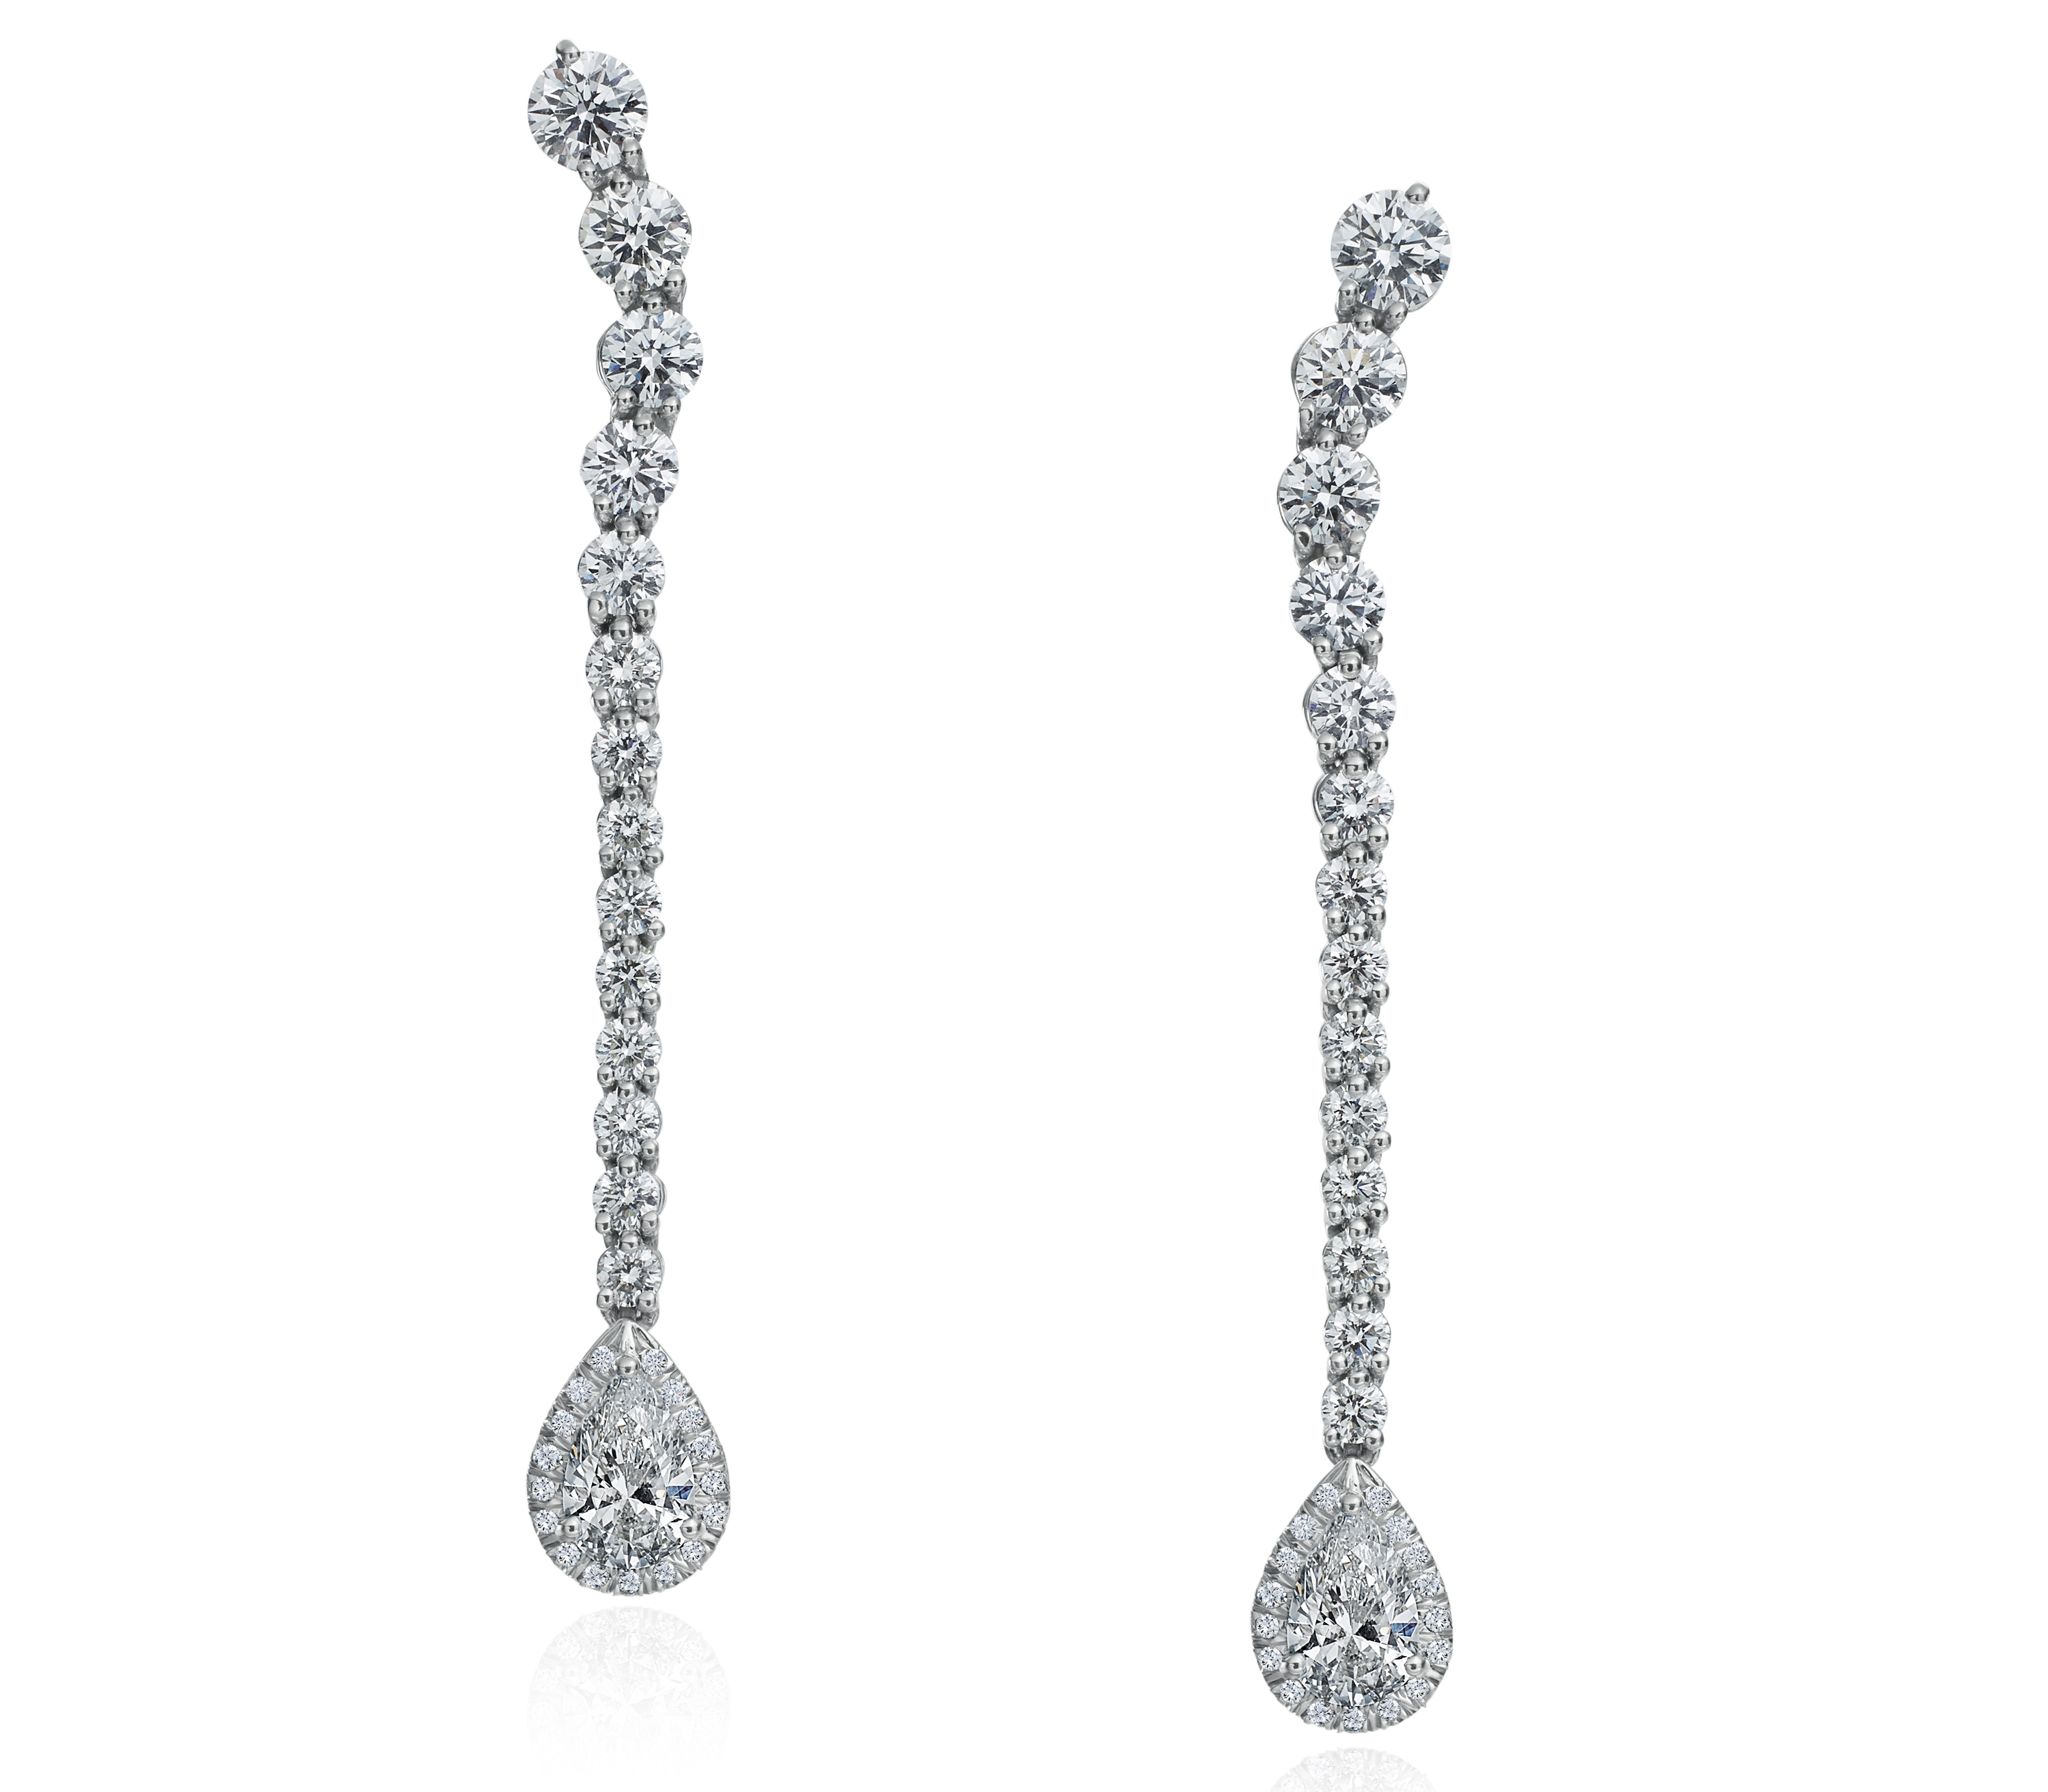 Gumuchian diamond Riviera earrings | JCK On Your Market